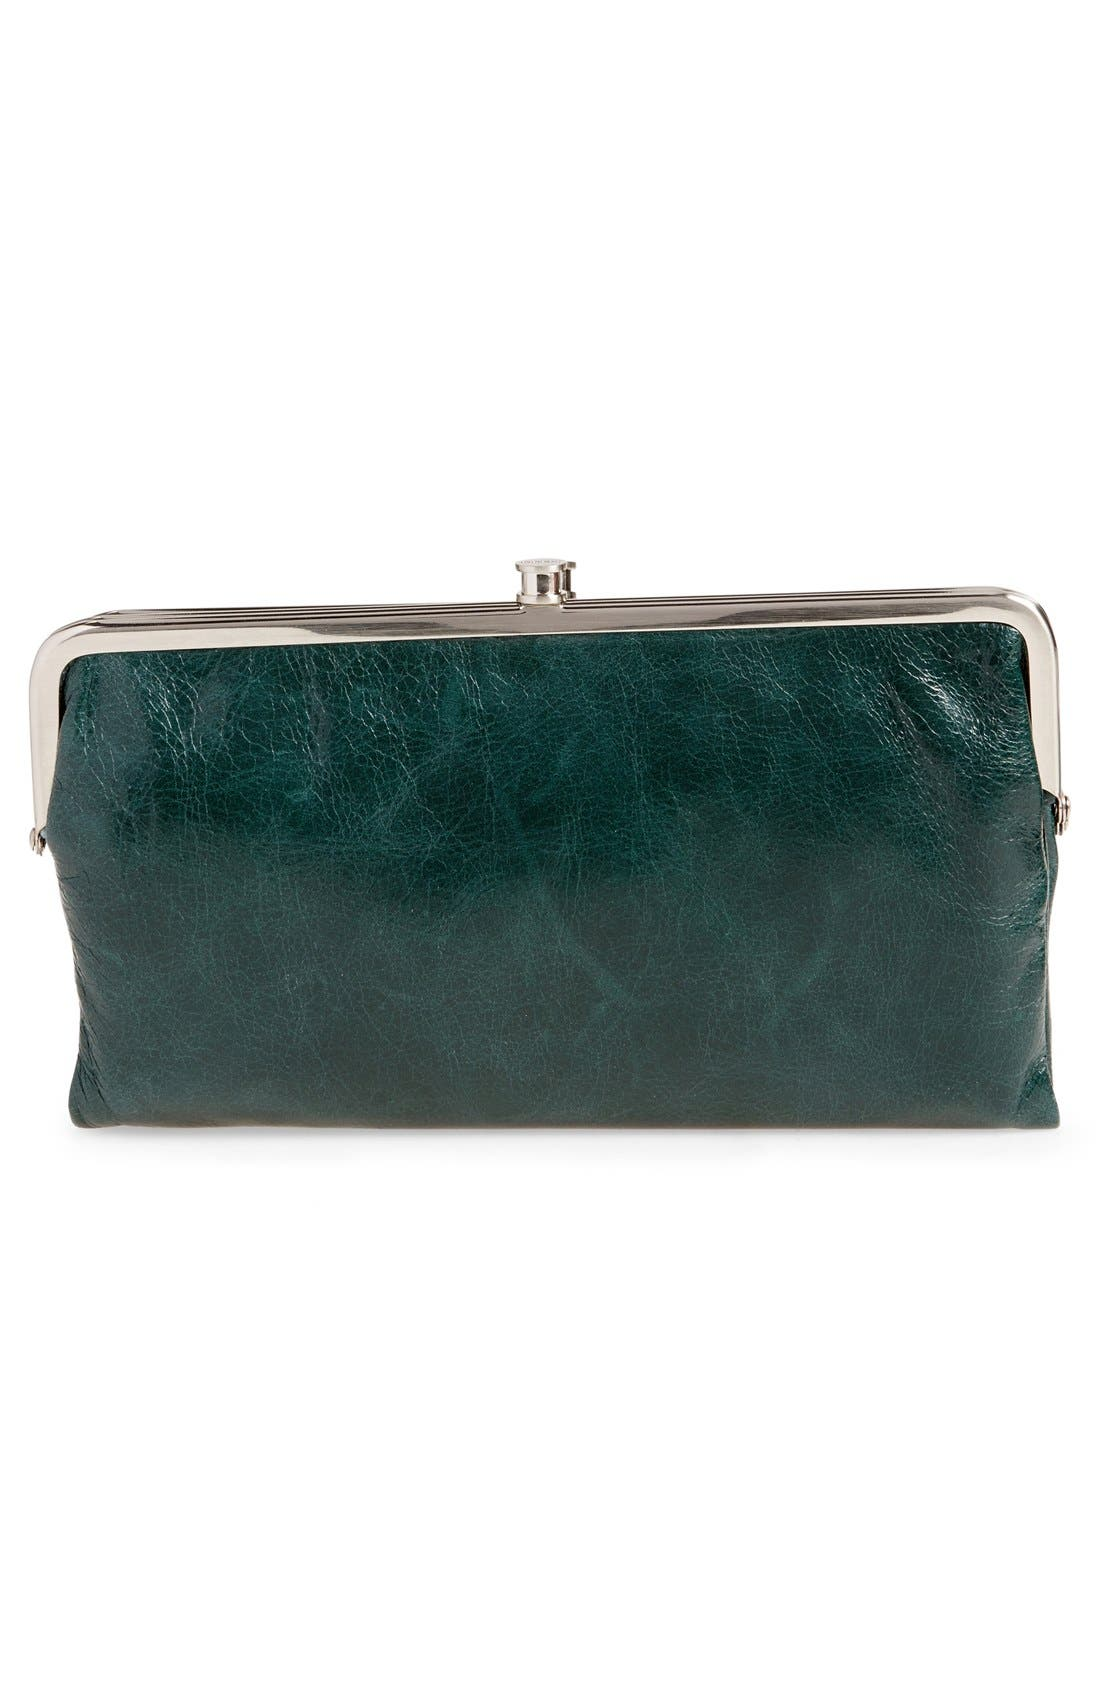 'Lauren' Leather Double Frame Clutch,                             Alternate thumbnail 8, color,                             Willow